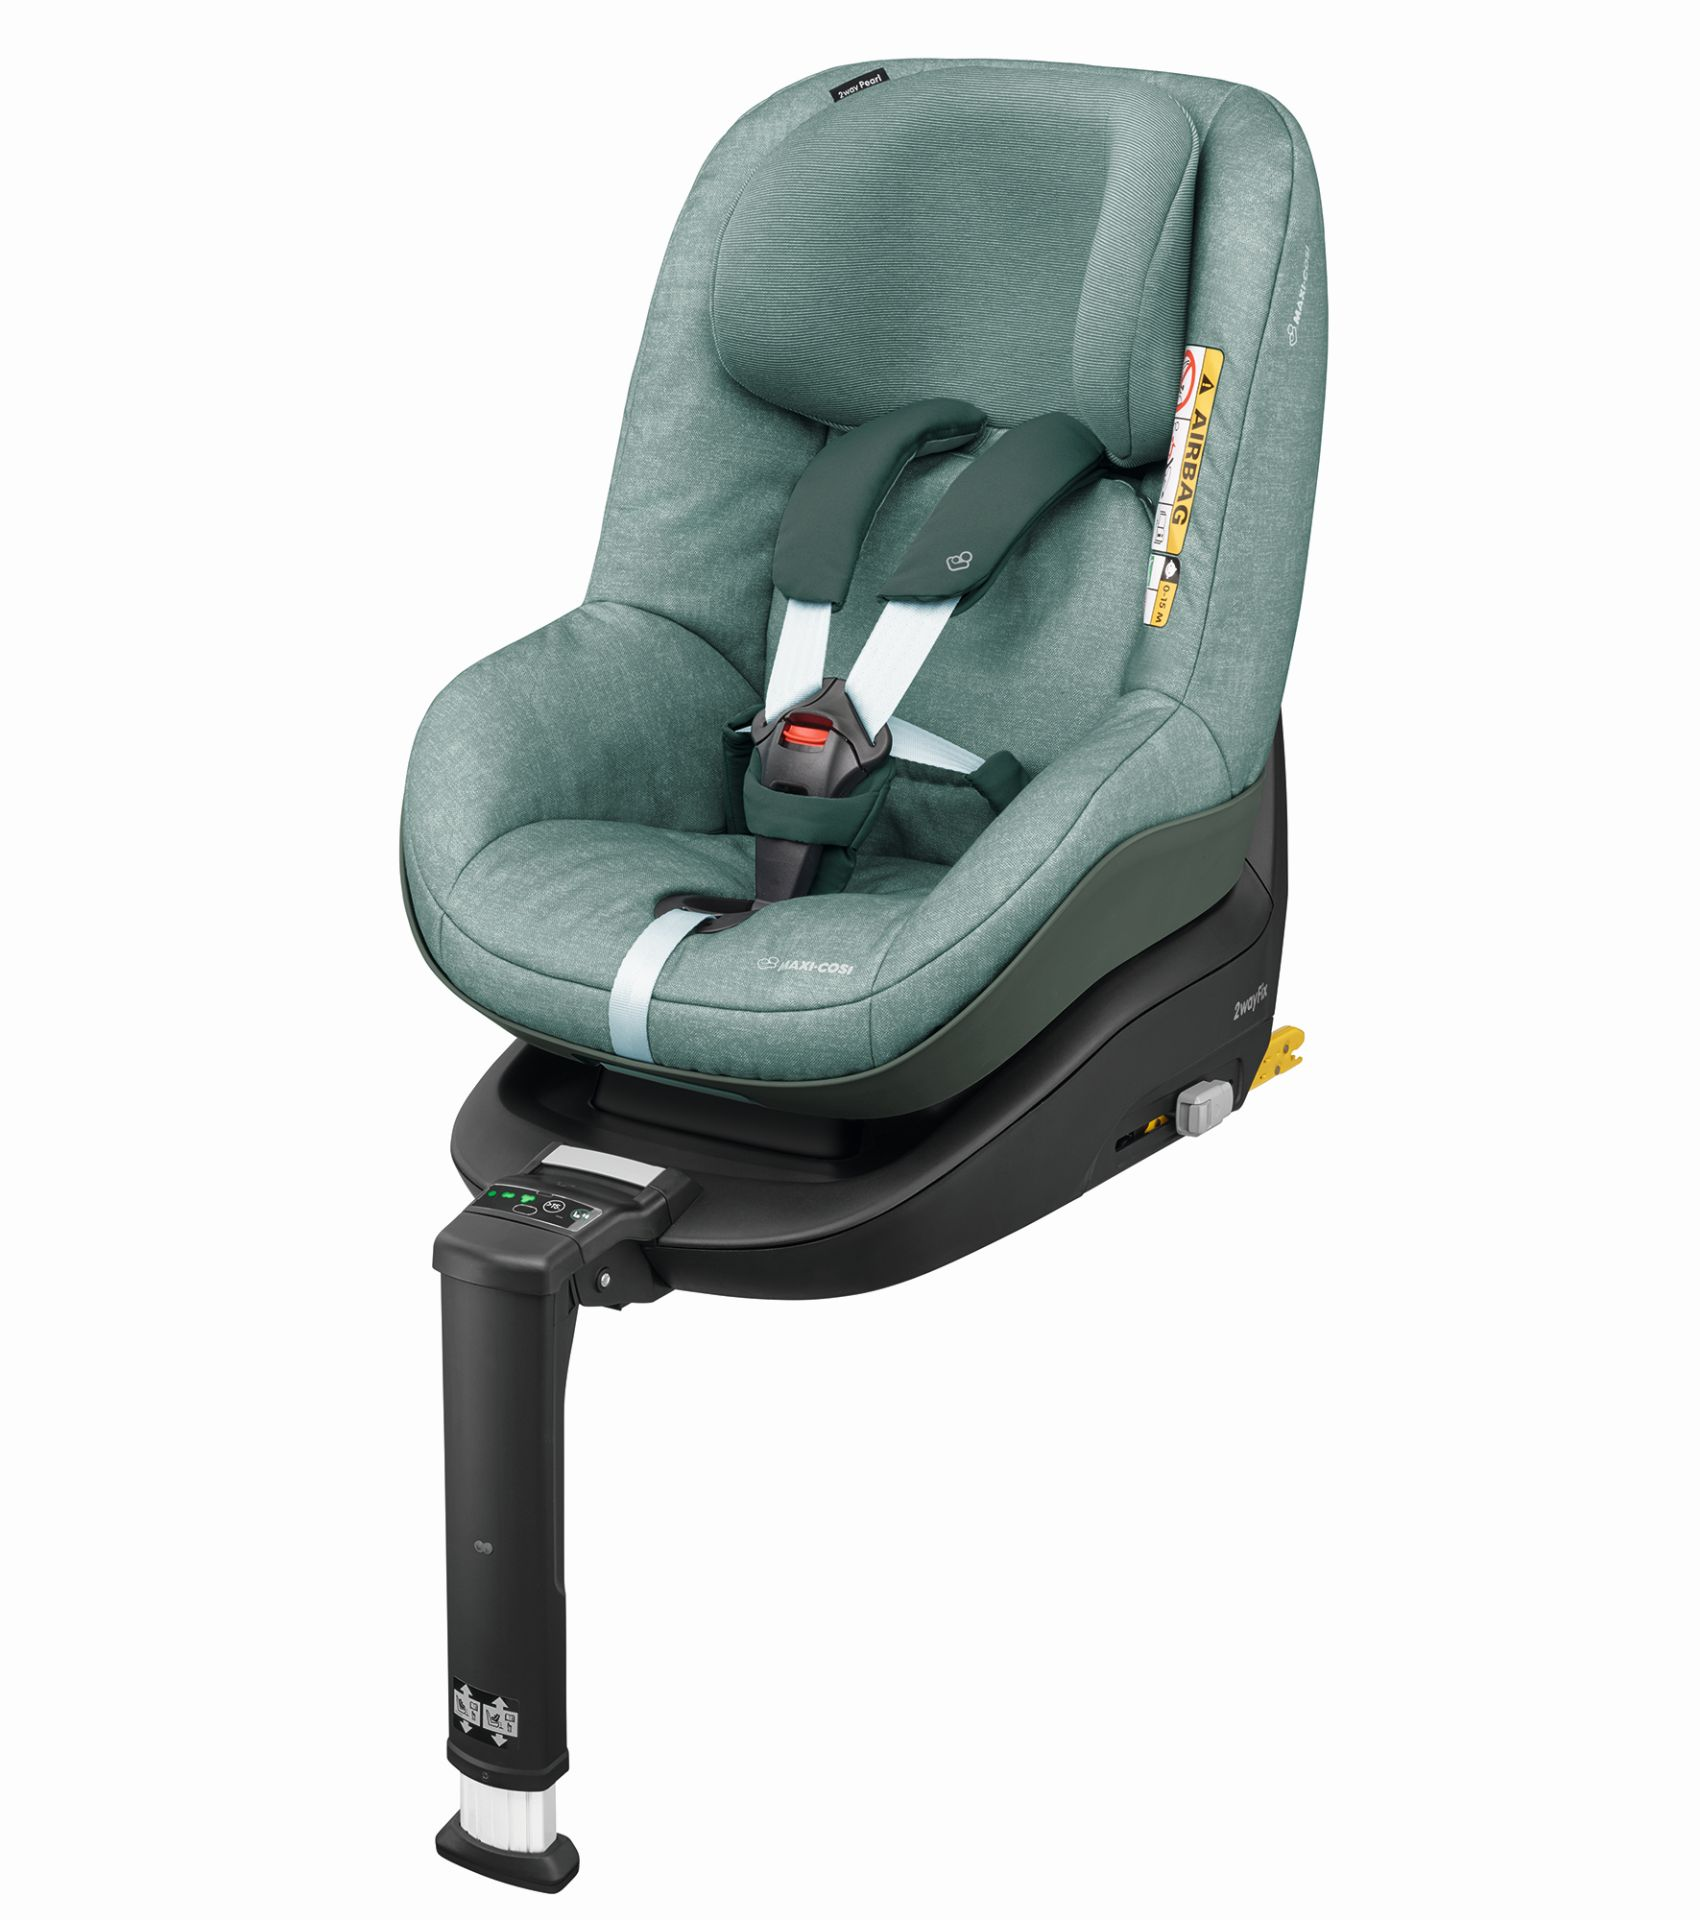 maxi cosi 2 way pearl incl 2 way fix 2017 nomad green buy at kidsroom car seats isofix. Black Bedroom Furniture Sets. Home Design Ideas